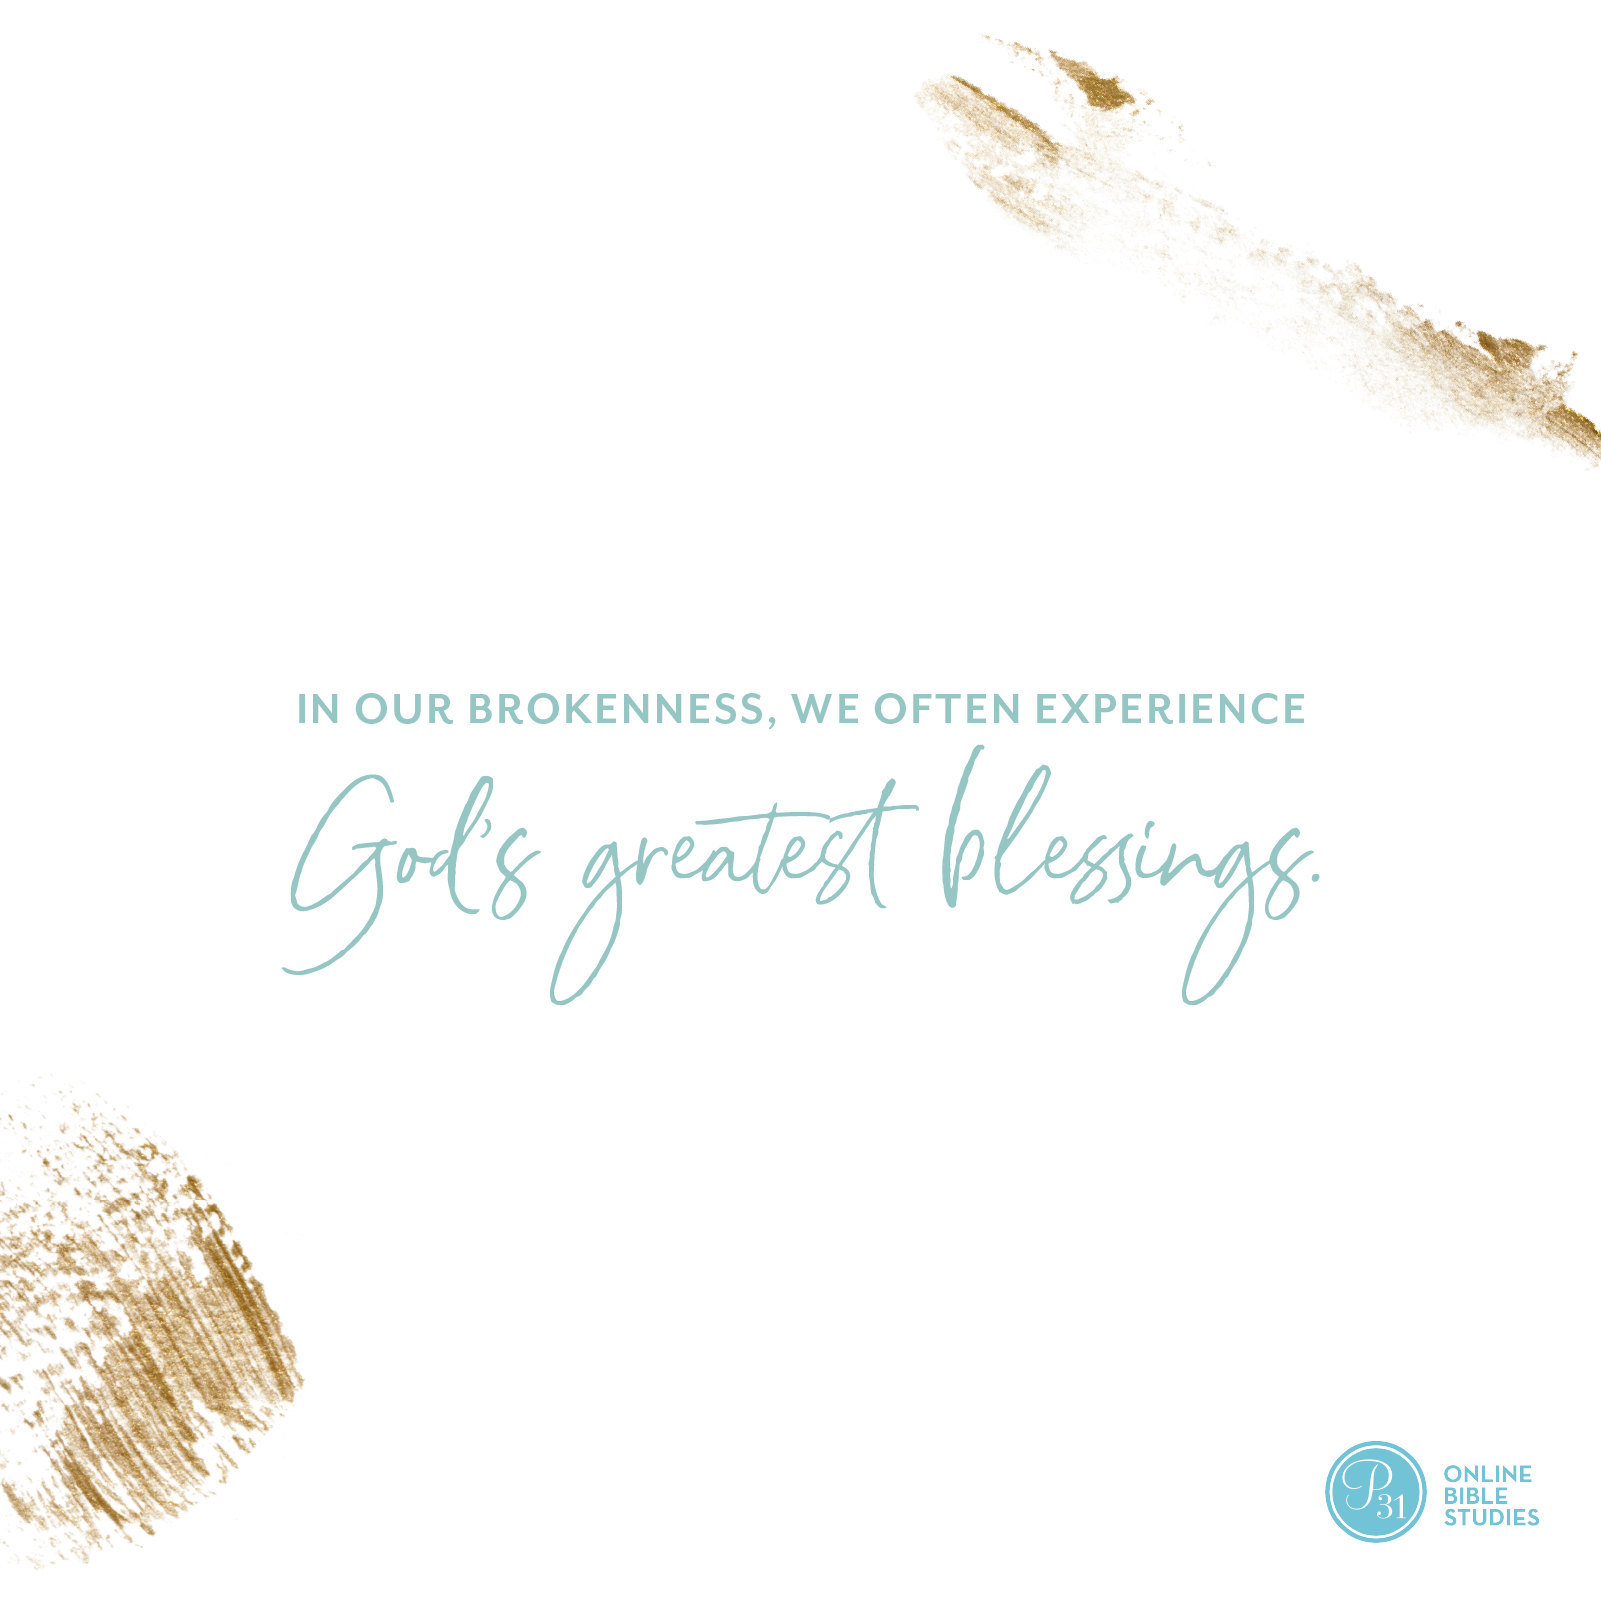 """In our brokenness, we often experience God's greatest blessings."" - Craig Groeschel  #DangerousPrayers 